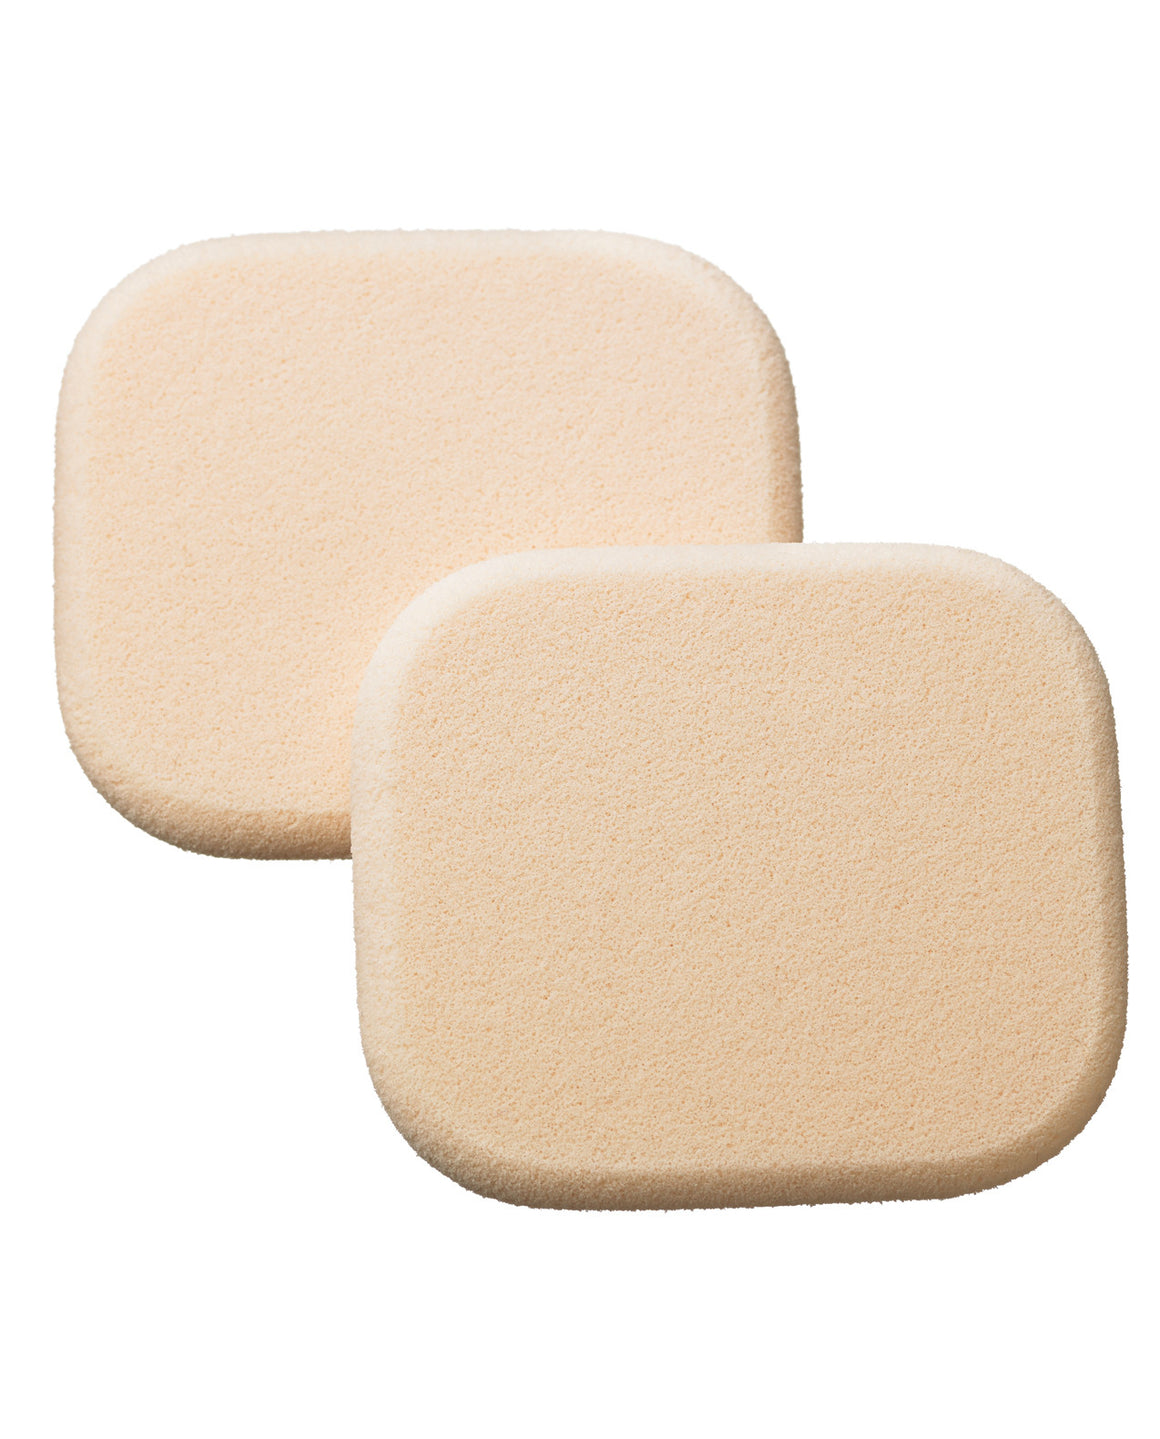 Makeup Sponges for Powder Foundation